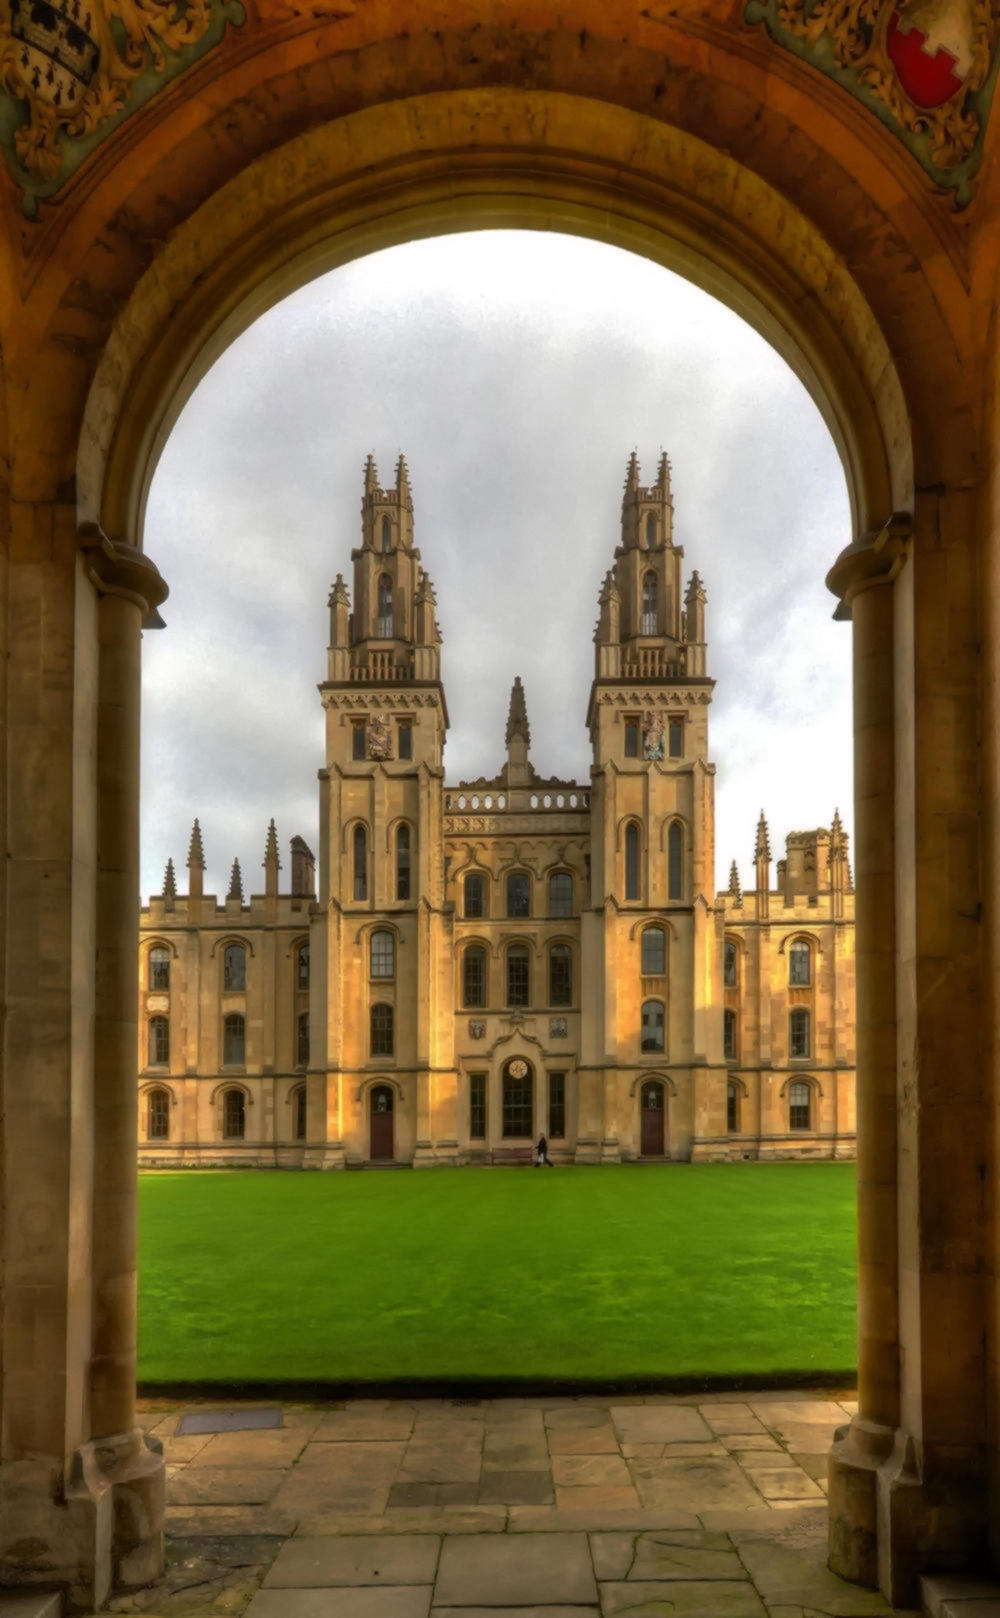 10 Reasons To Love Oxford The City Of Dreaming Spires